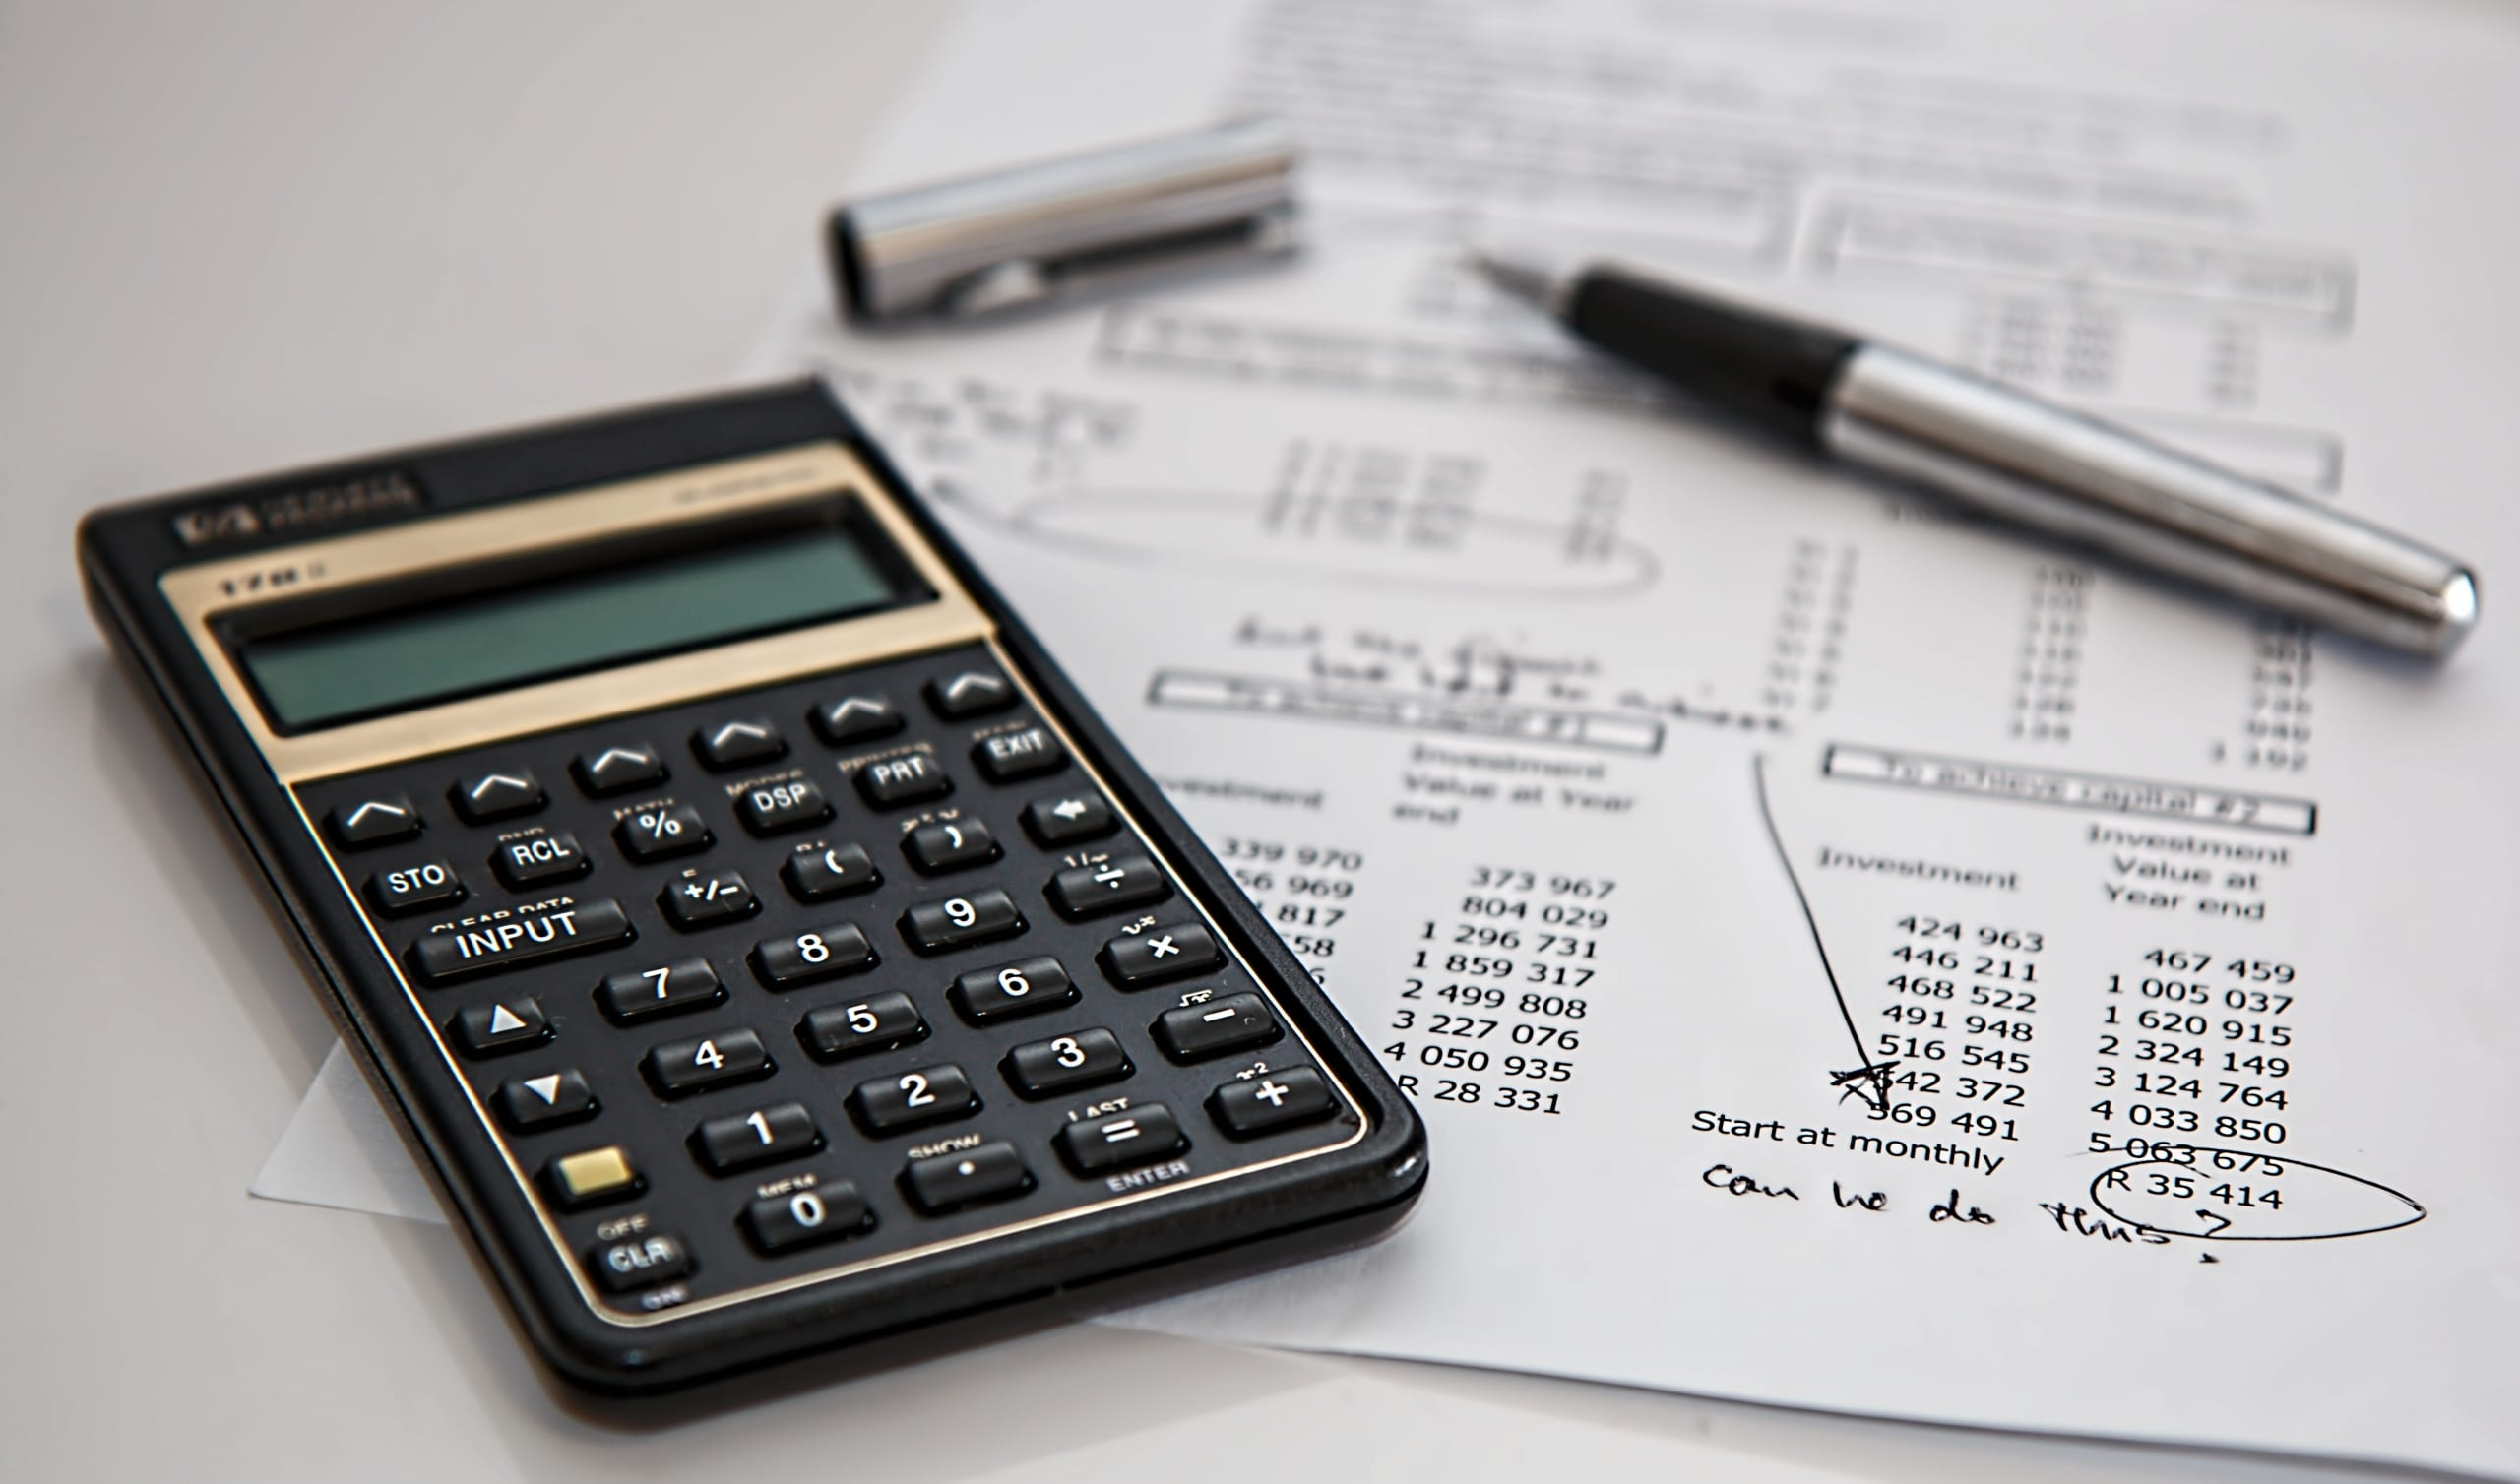 Black calculator and tax investment sheet